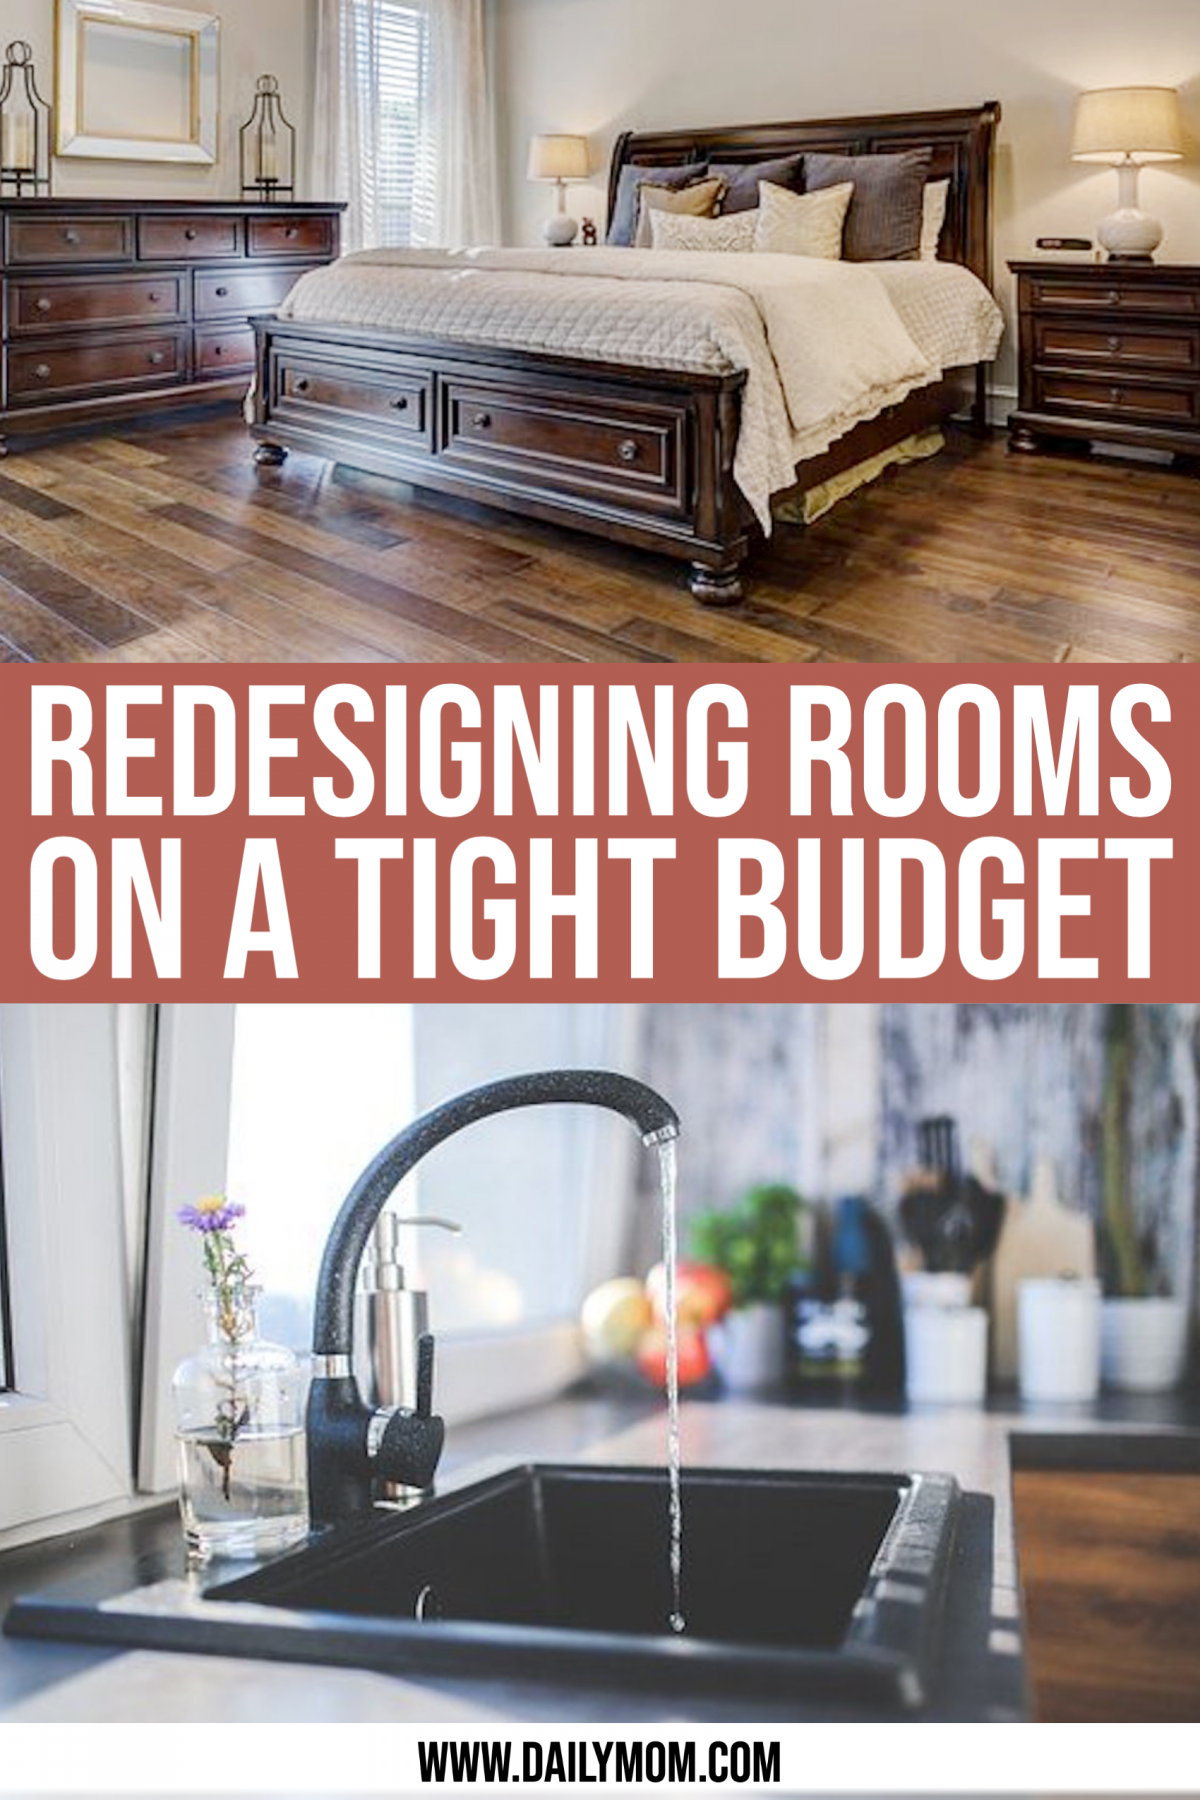 Diy- Rooms Designed The Way You Want In Your Home On A Tight Budget